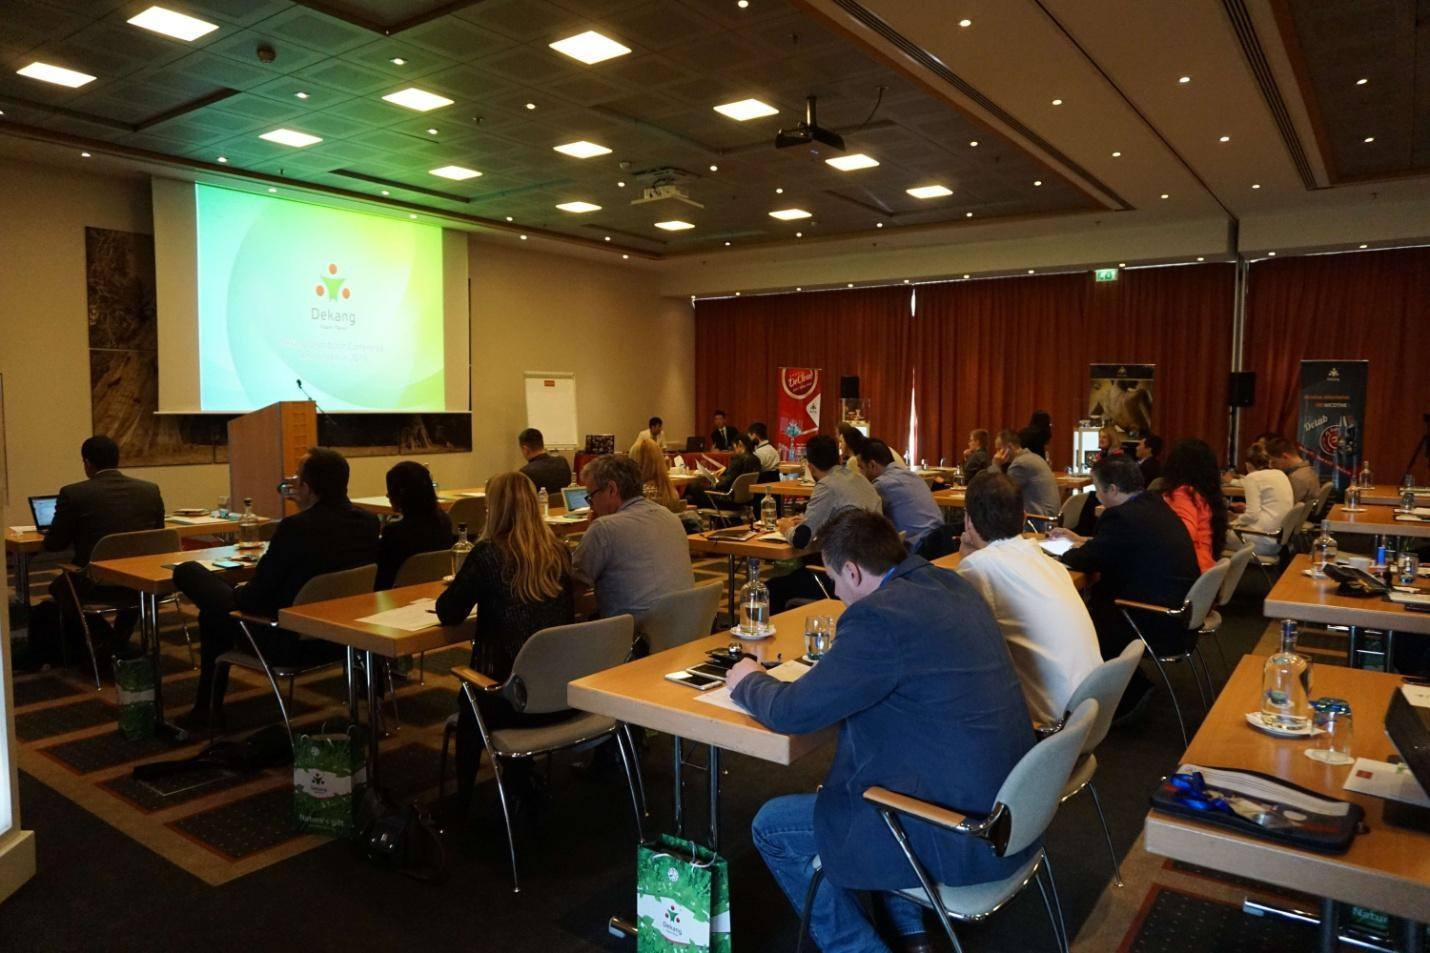 Dekang Distributors Conference Amsterdam 2015 Photo 1